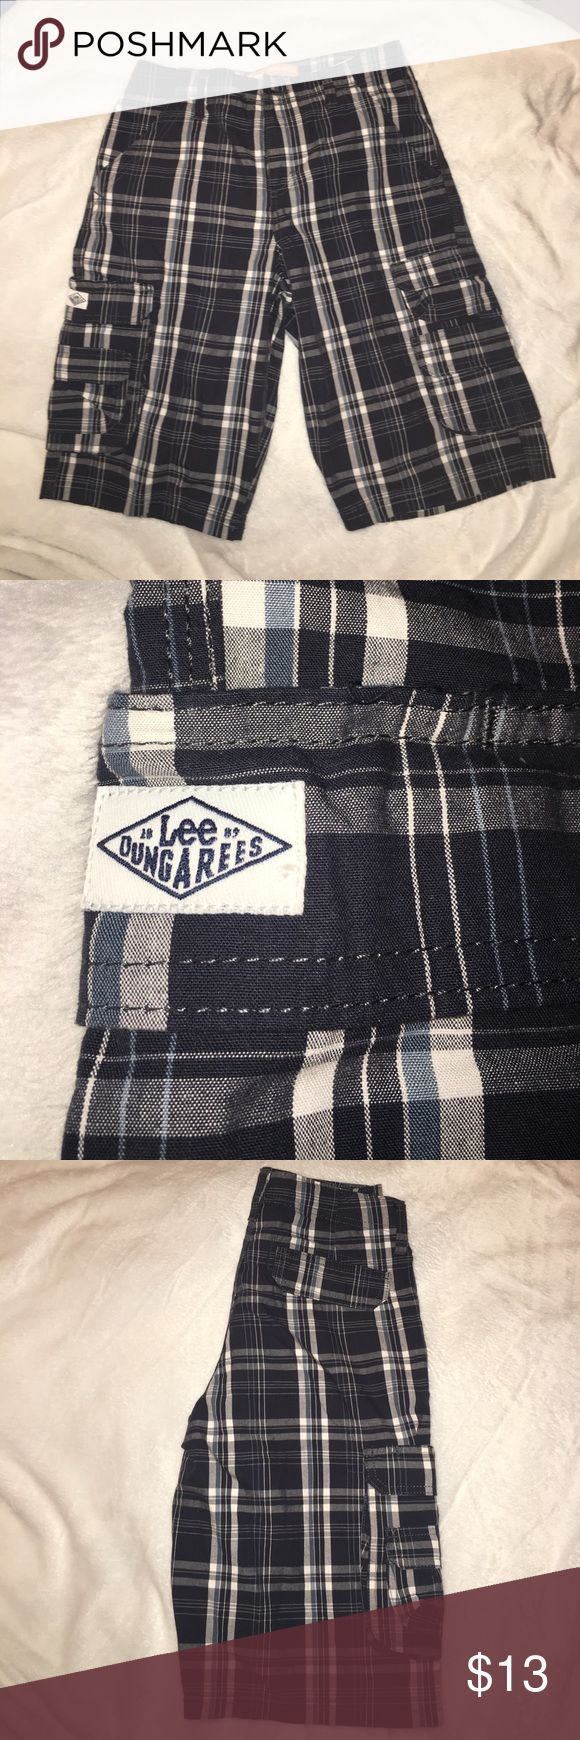 14R Lee Dungarees, Plaid youth shorts. Never worn. Perfect condition. Navy, white, light blue and white plaid pattern. Cargo pockets. Bundle and save! Lee Dungarees Bottoms